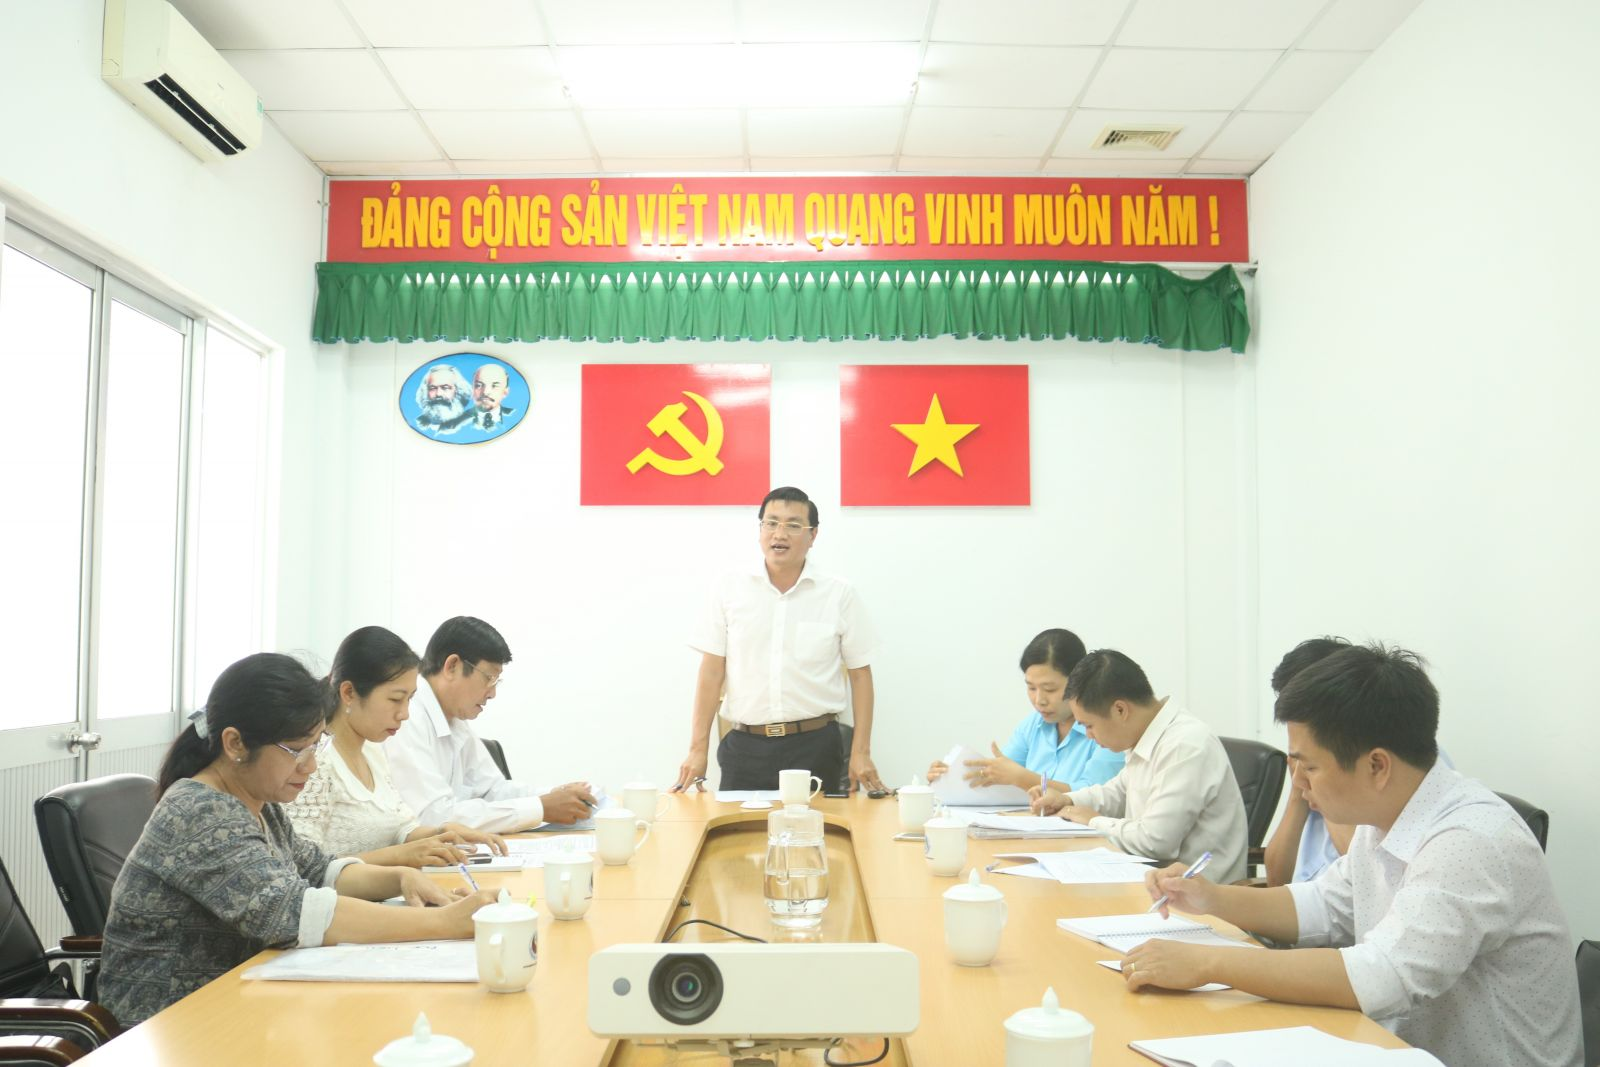 A meeting organized to deploy the implementation plan of the launching ceremony